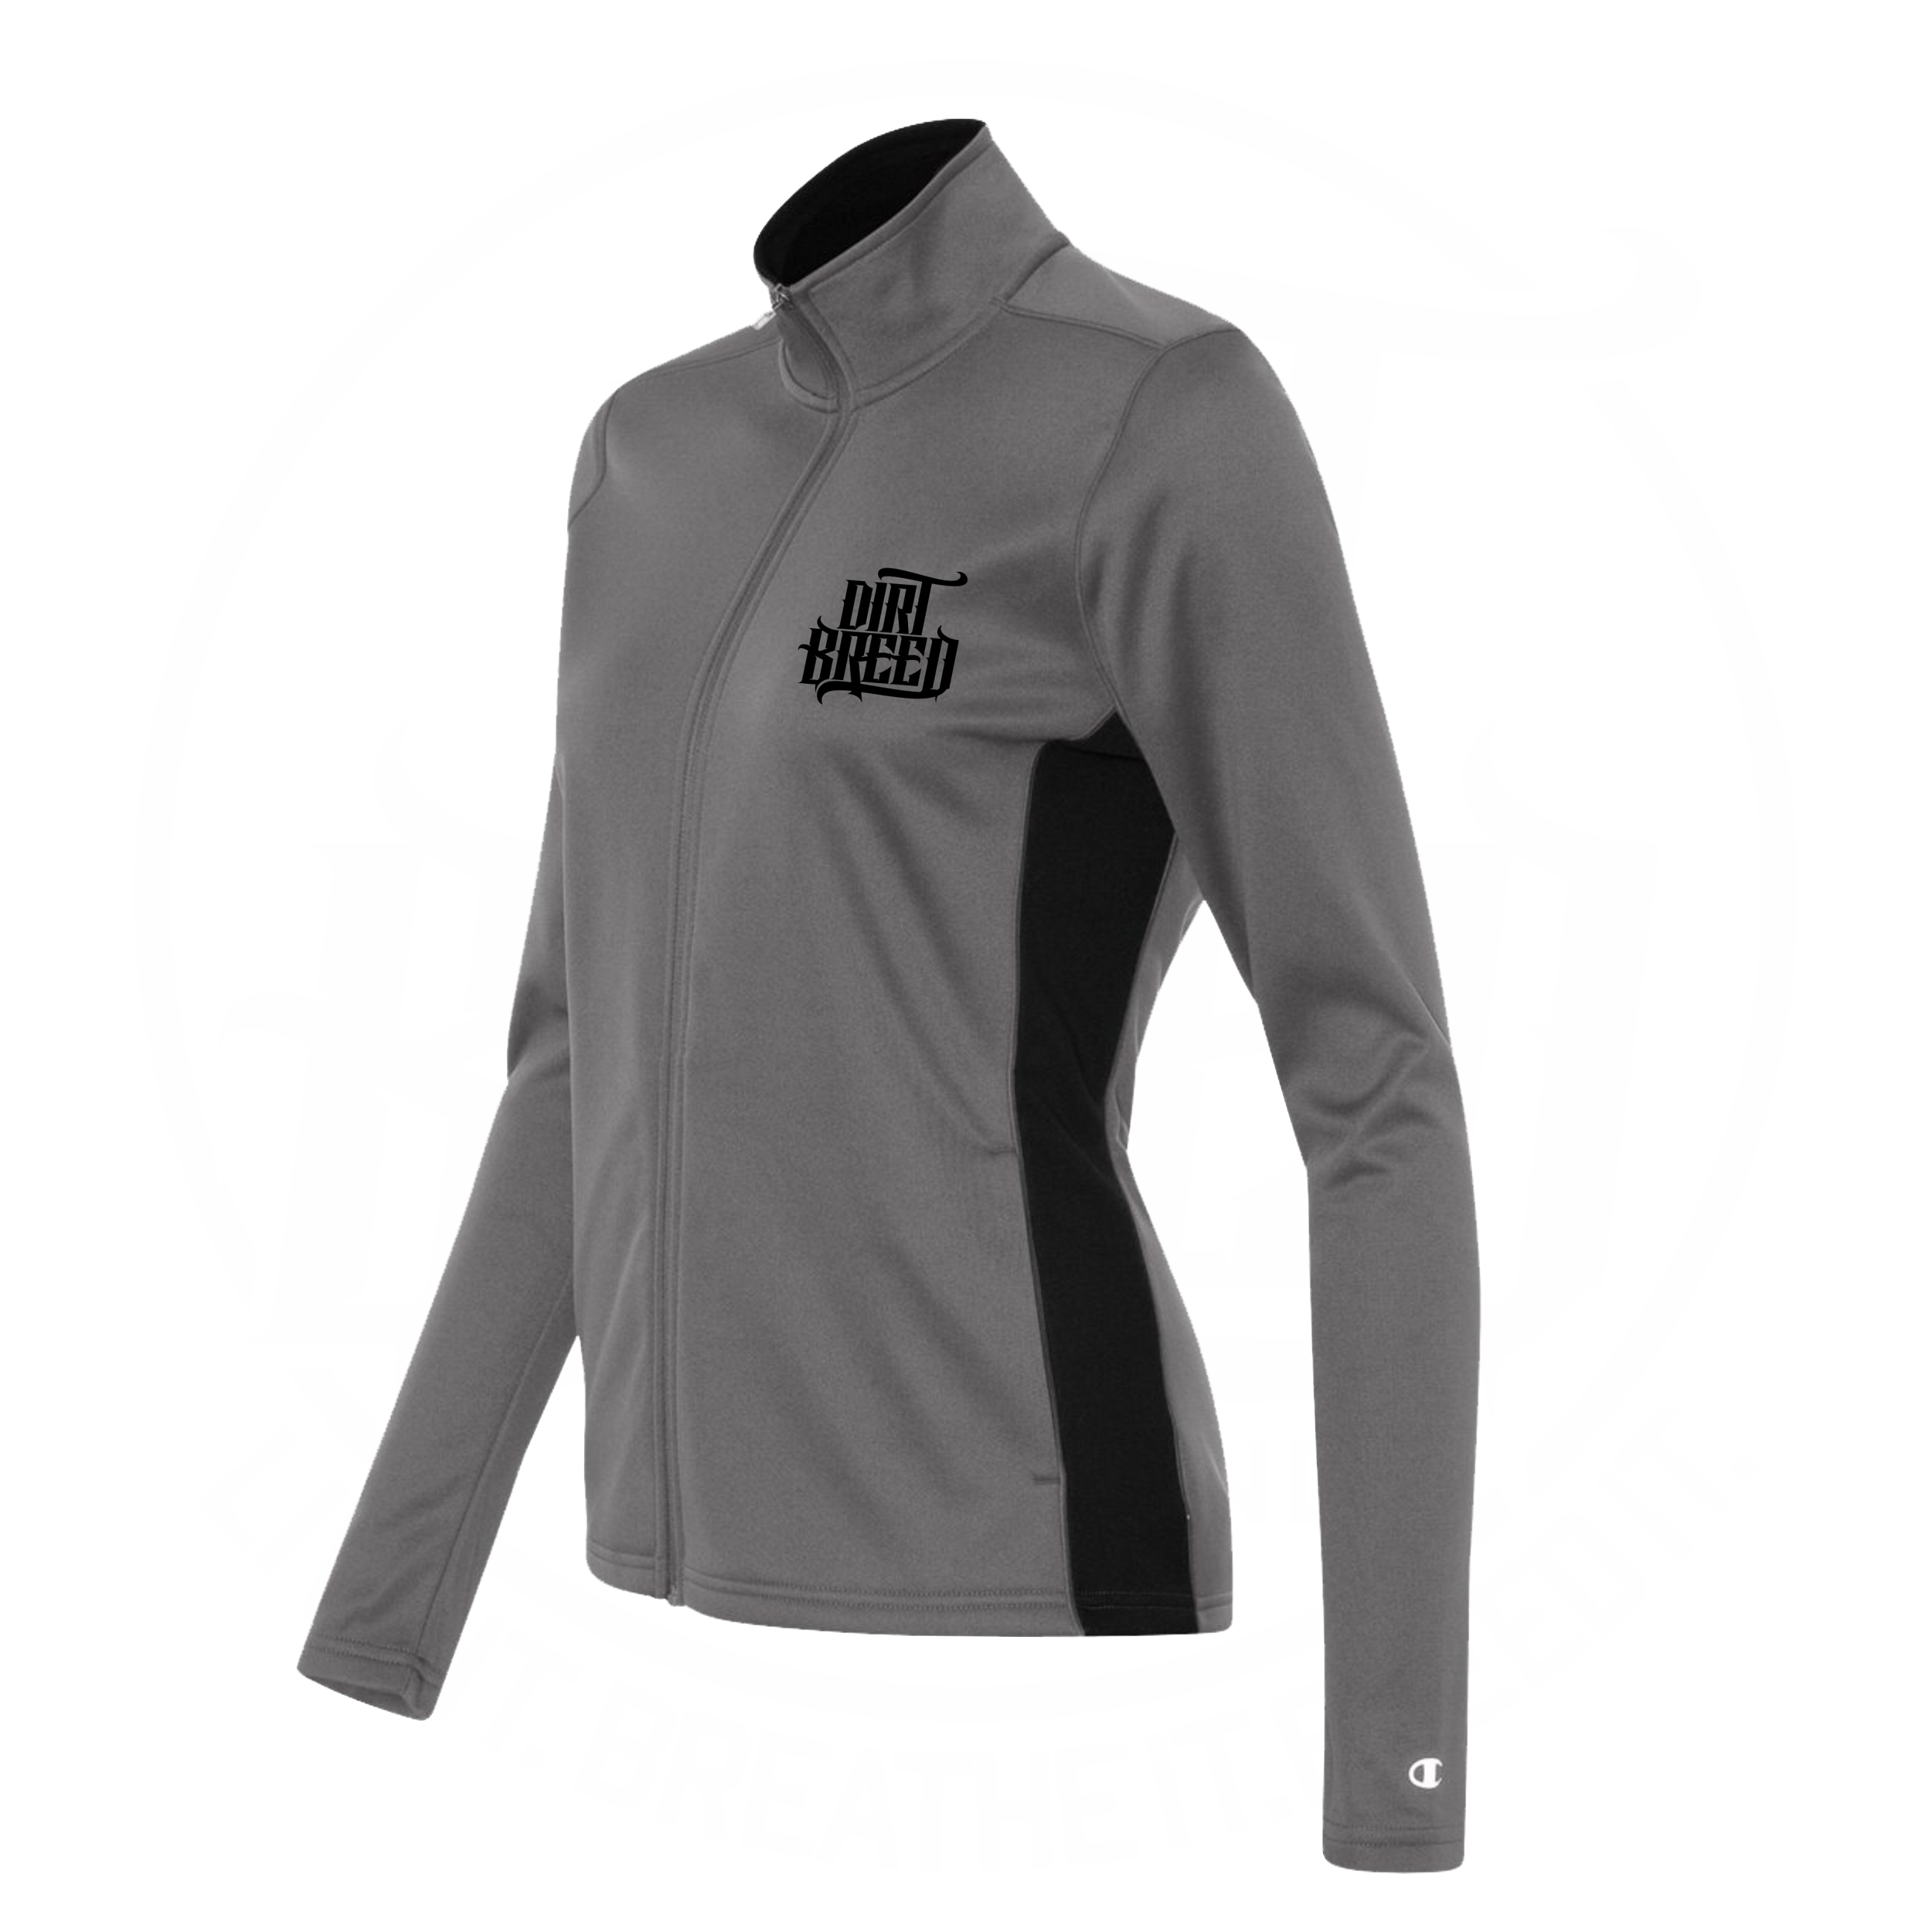 Ladies Full Zip Dirt Track Racing Fleece Jacket